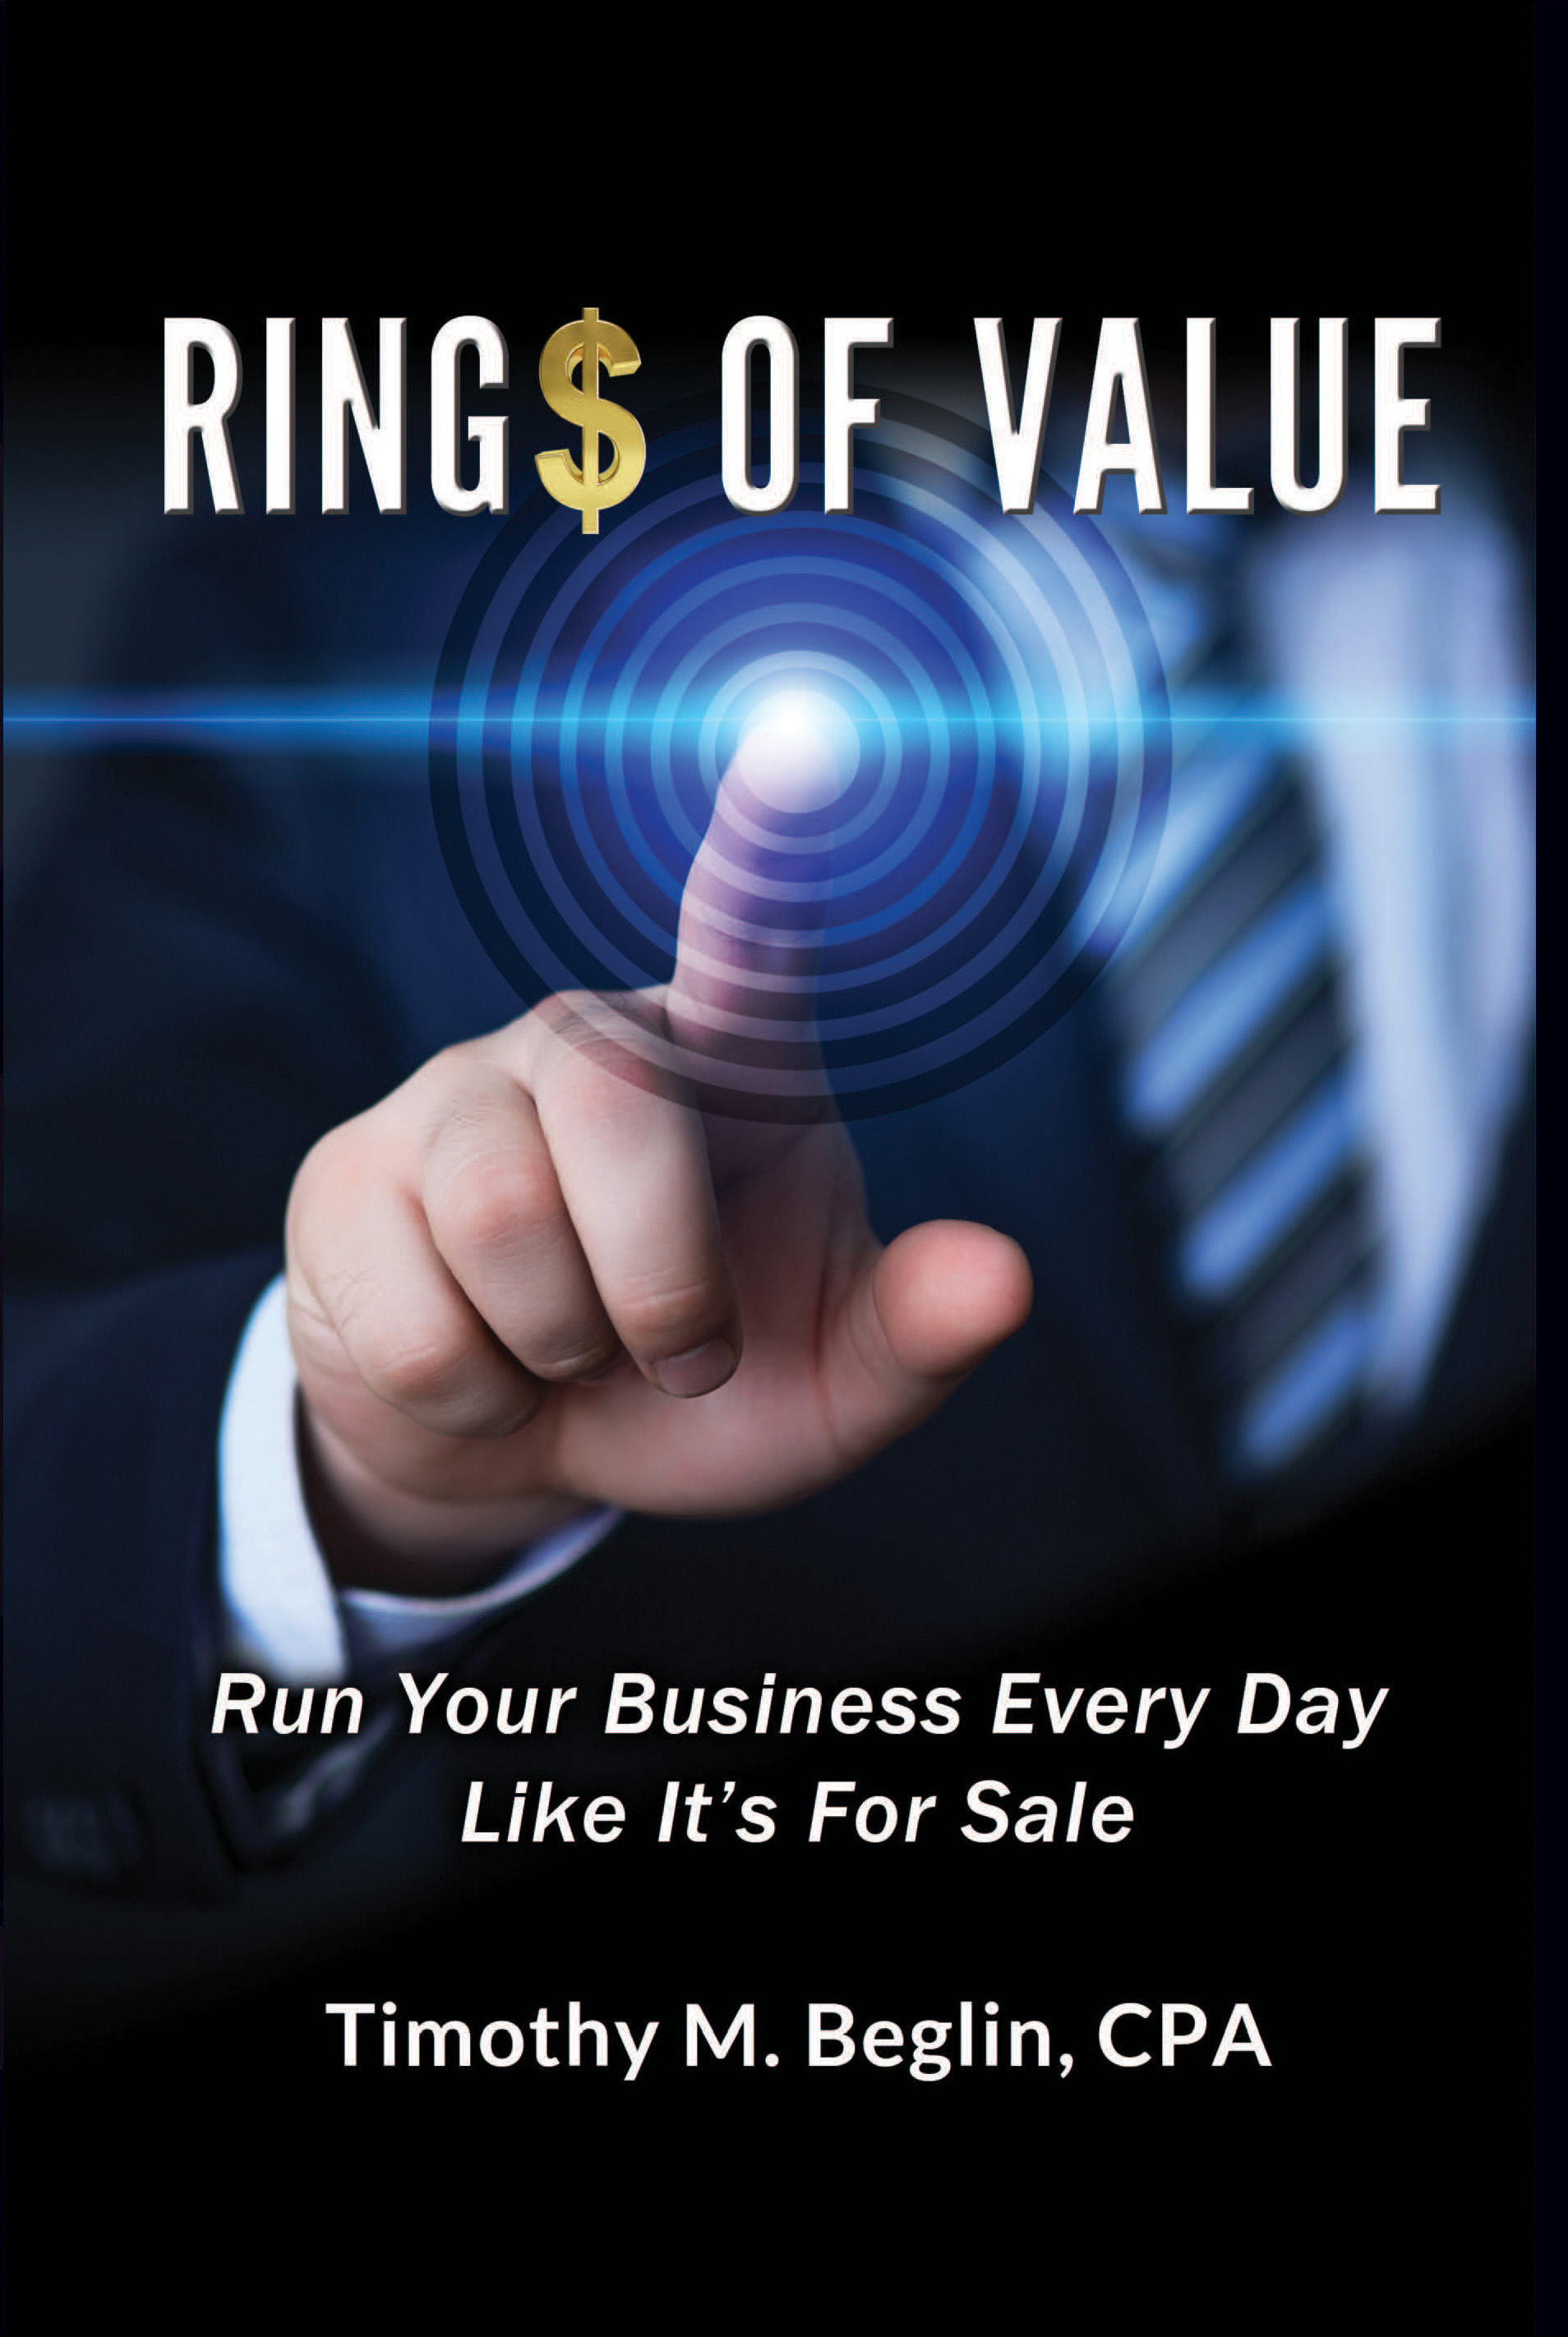 image of a book cover for Rings of Value